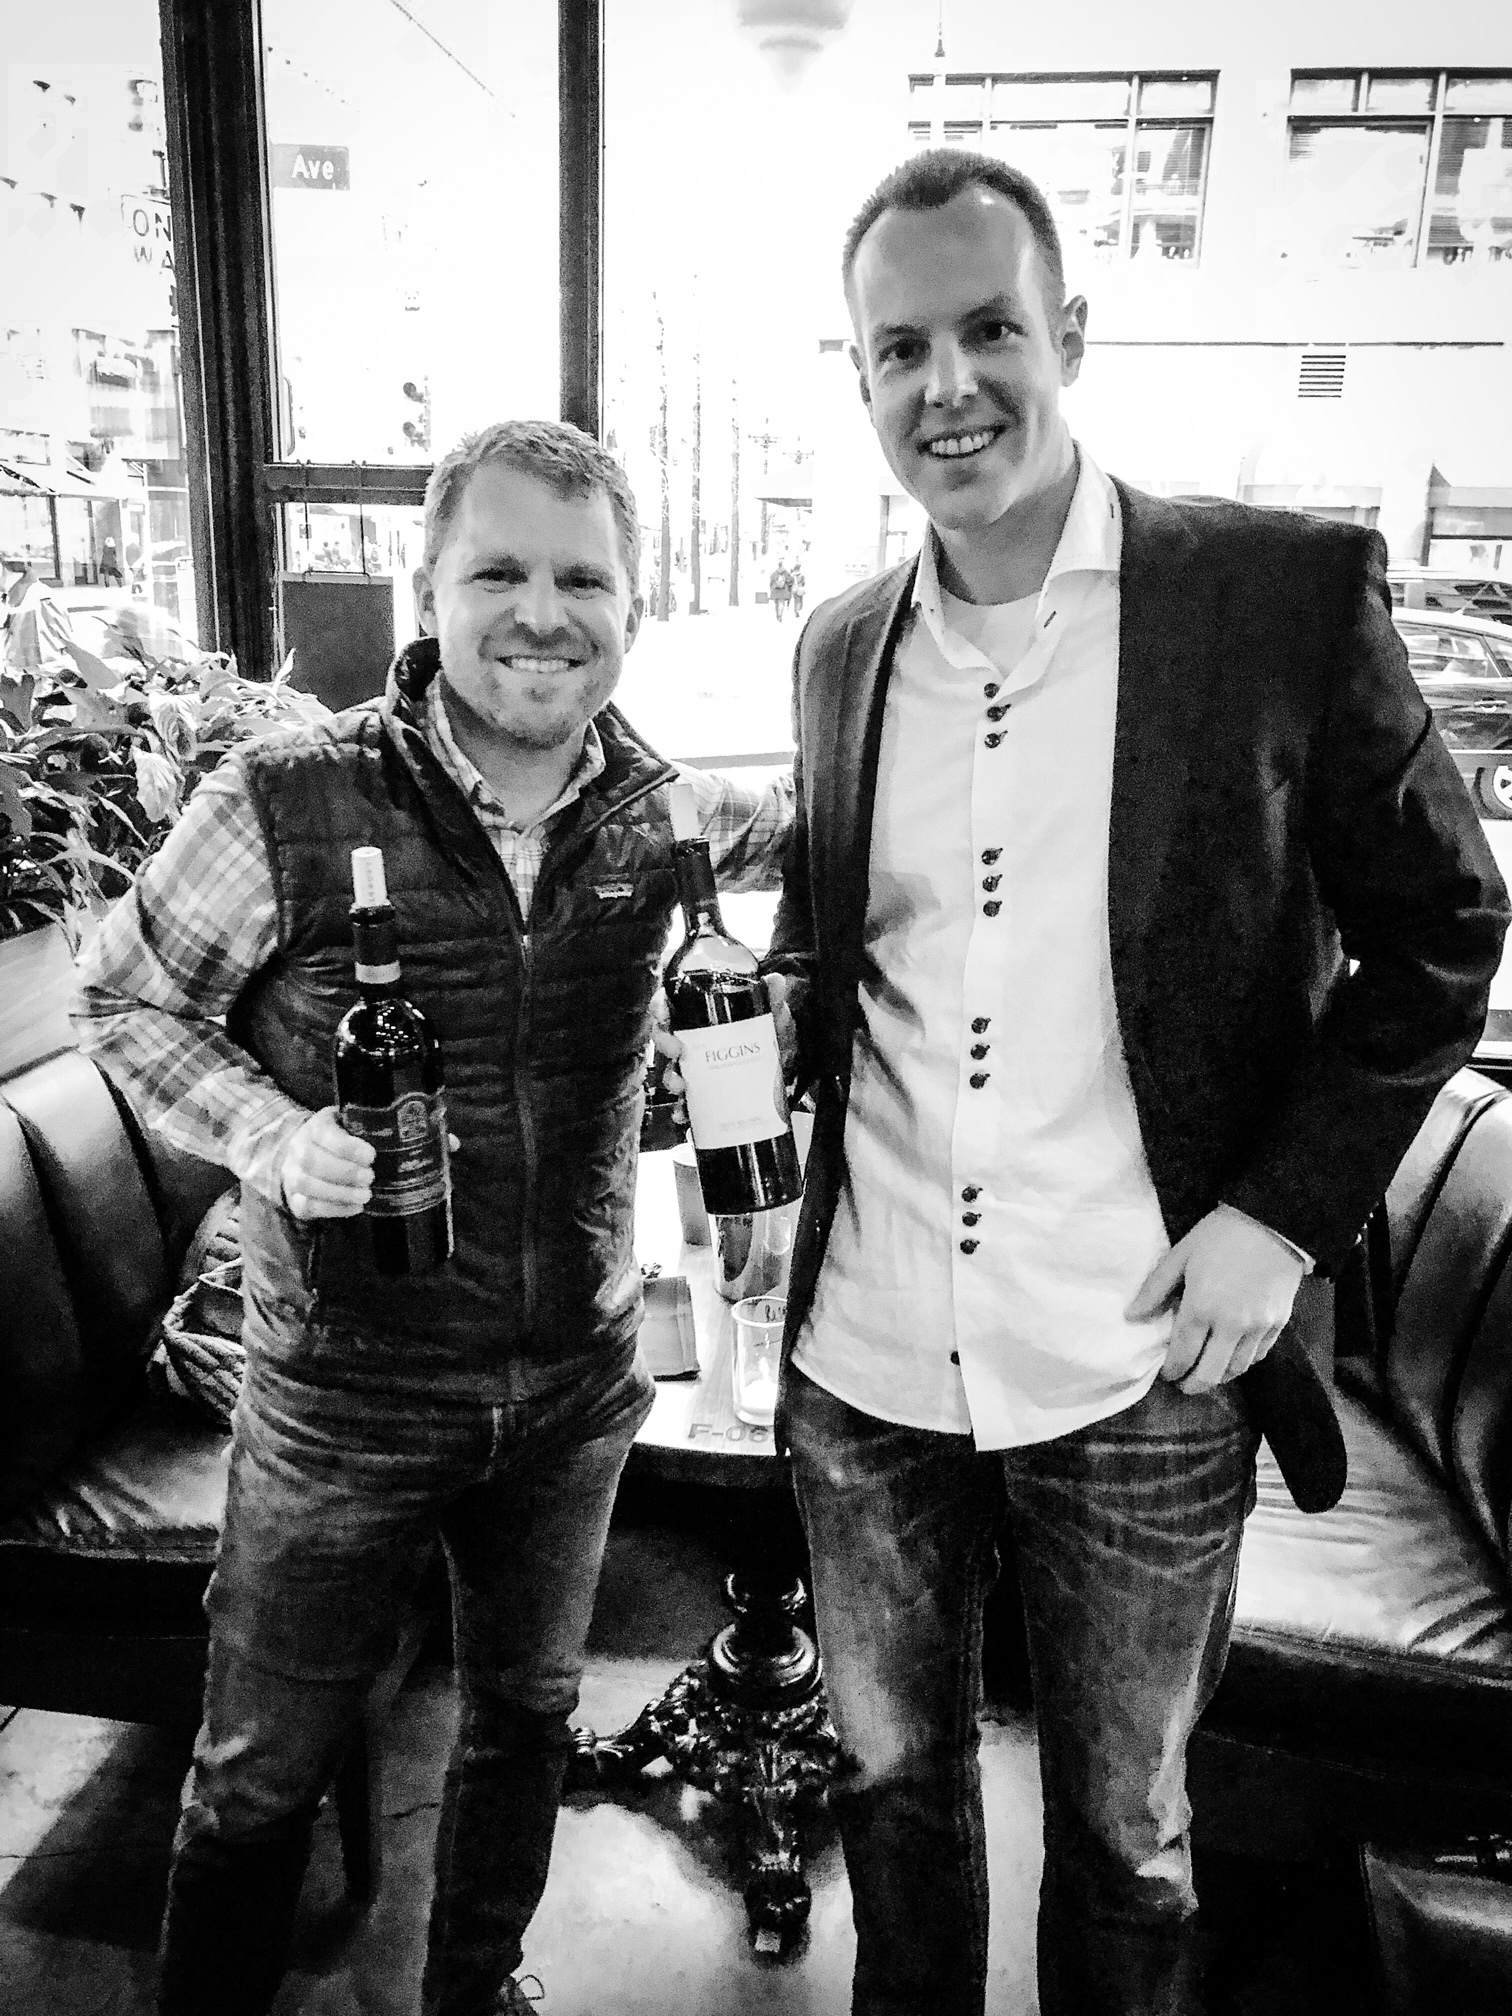 It was a fantastic afternoon of talking wine with superstar winemaker, Chris Figgins, of Leonetti Cellar.